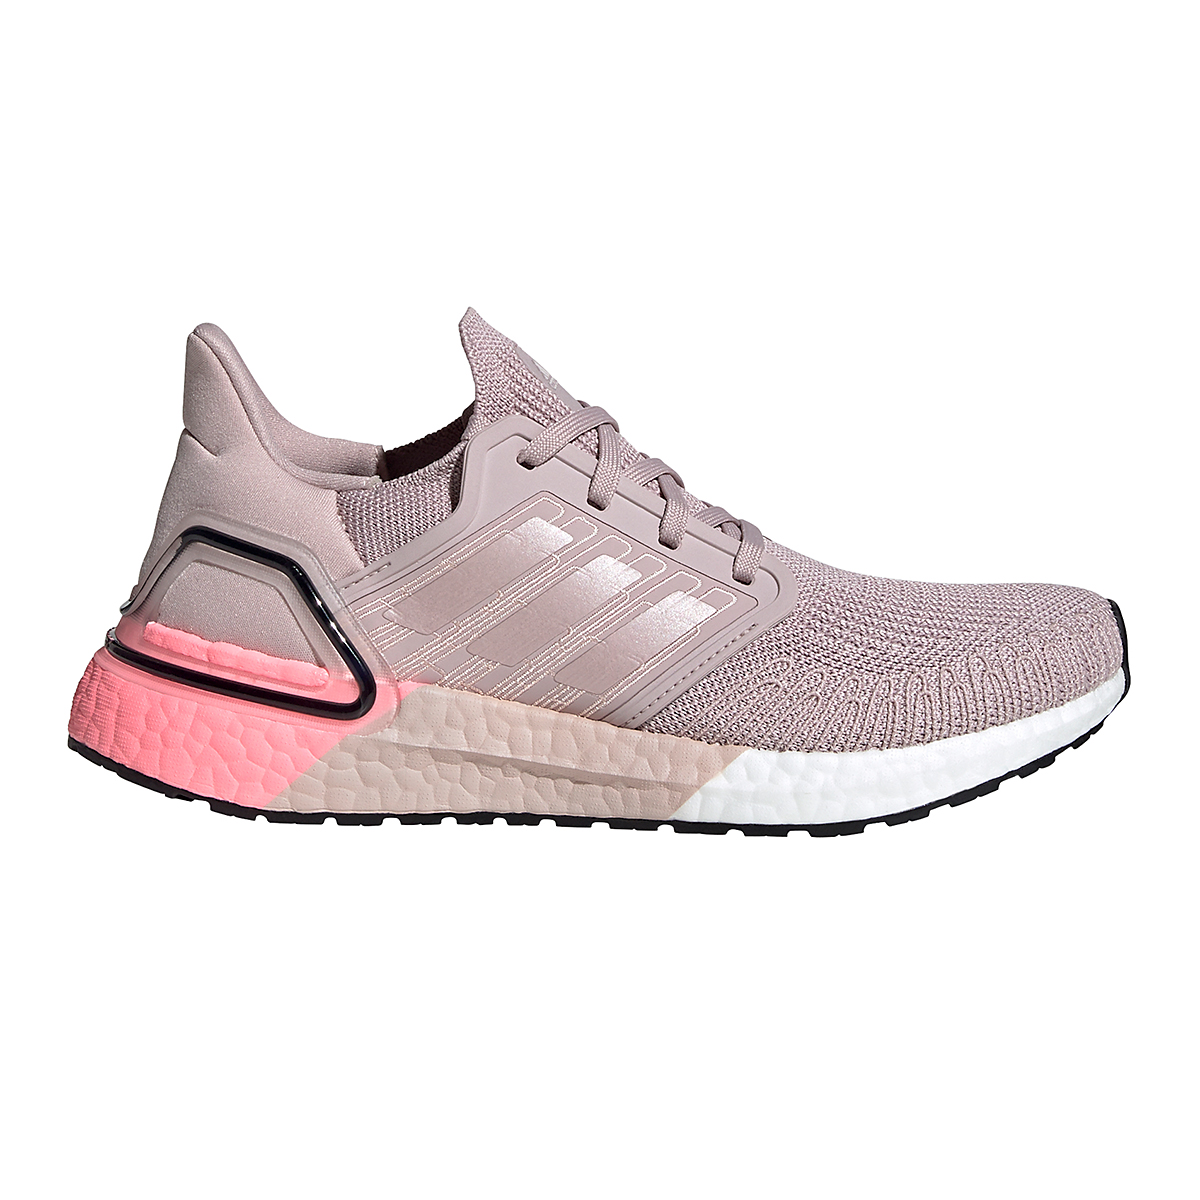 Women's Adidas Ultraboost 20 Running Shoe - Color: New Rose - Size: 5 - Width: Regular, New Rose, large, image 1